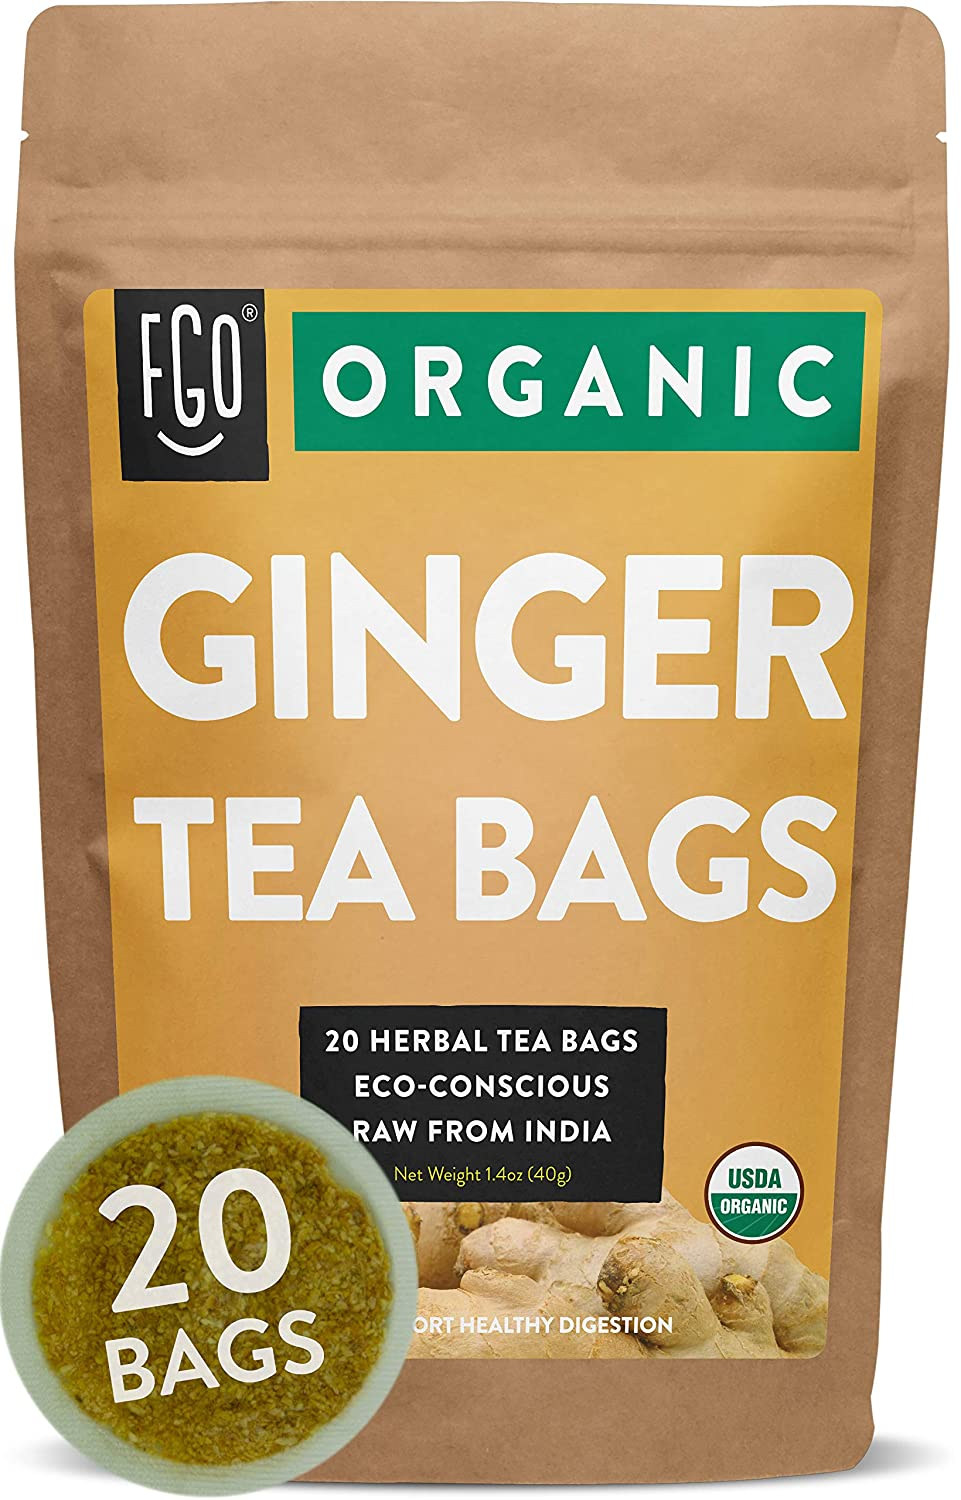 20 Tea Bags | Eco-Conscious Tea Bags in Kraft Bag | Raw from India